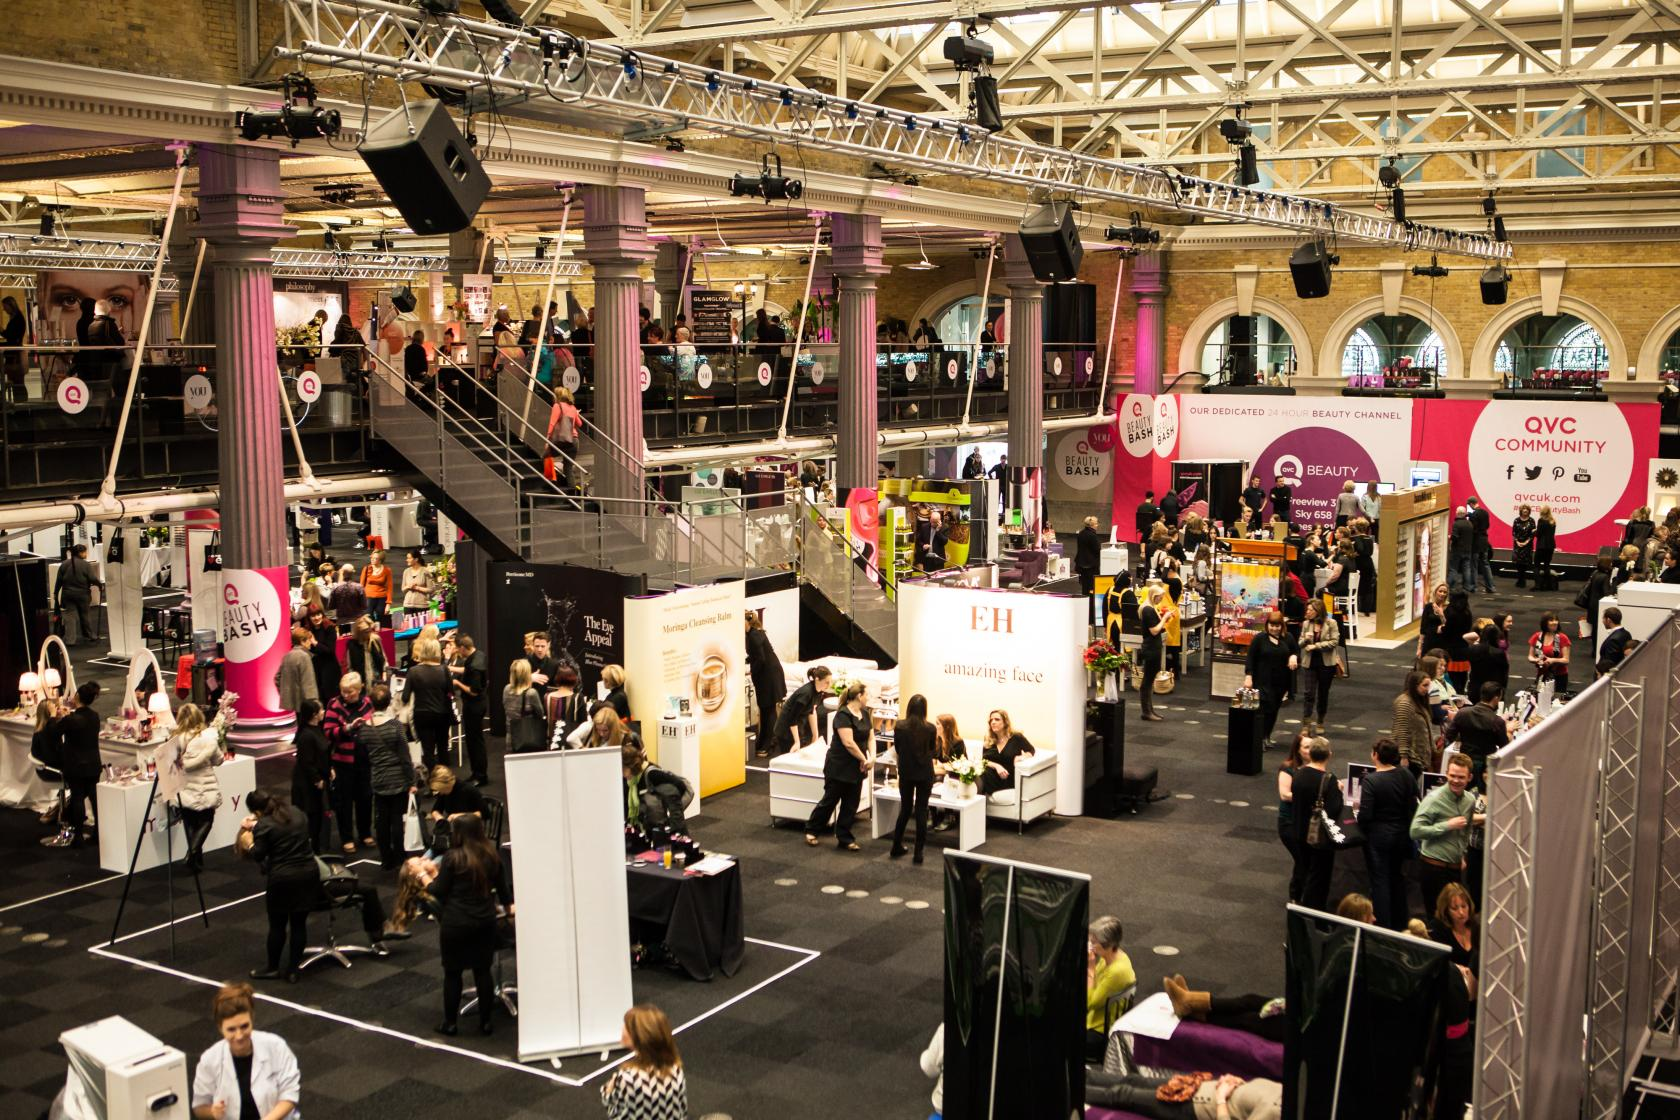 One of London's most flexible event spaces, Old Billingsgate is available on a dry hire basis for exhibitions, trade shows and other large events.